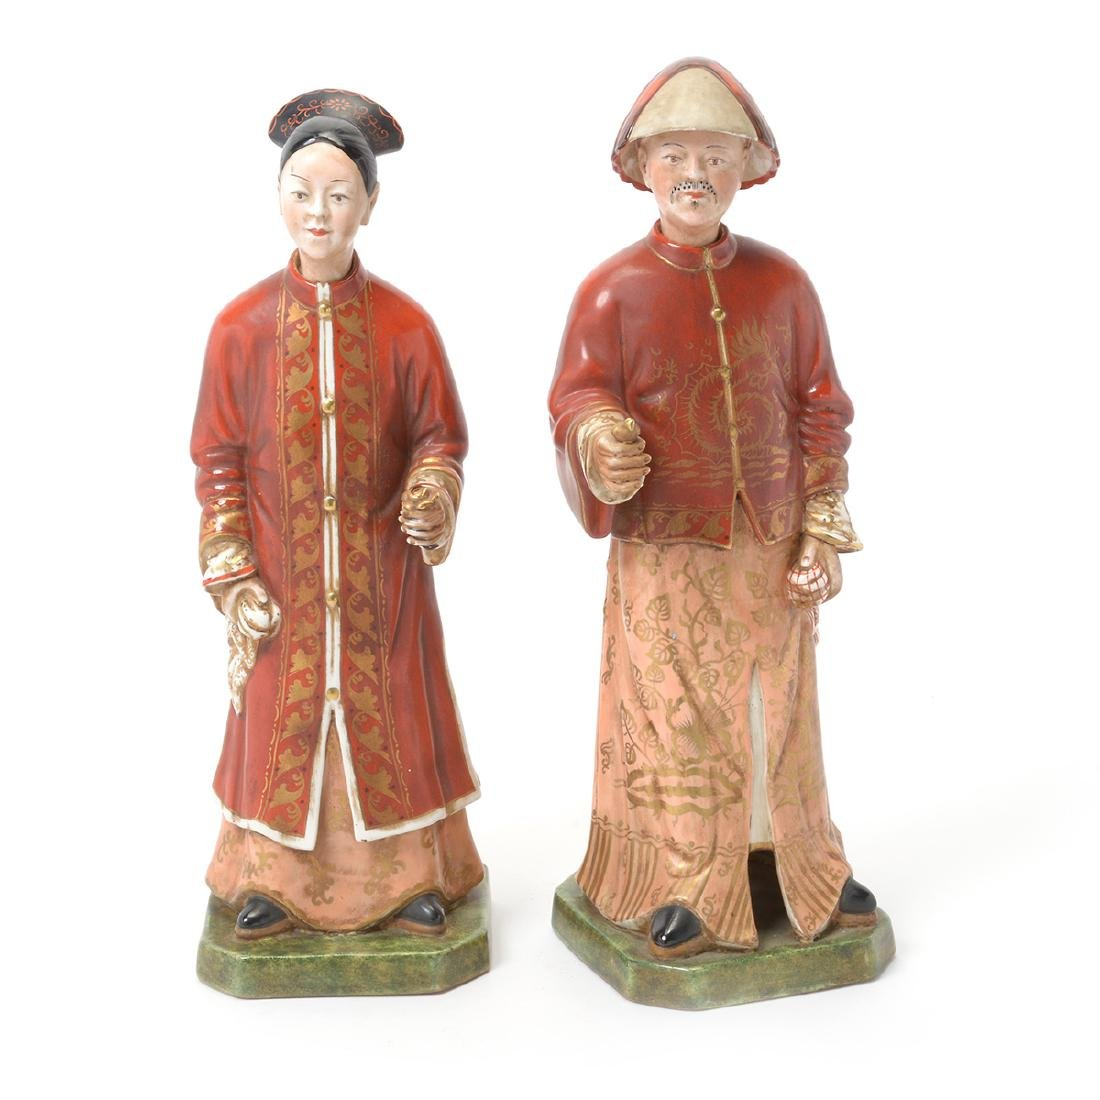 Pair of Italian Porcelain Nodder Figures of Chinoiserie